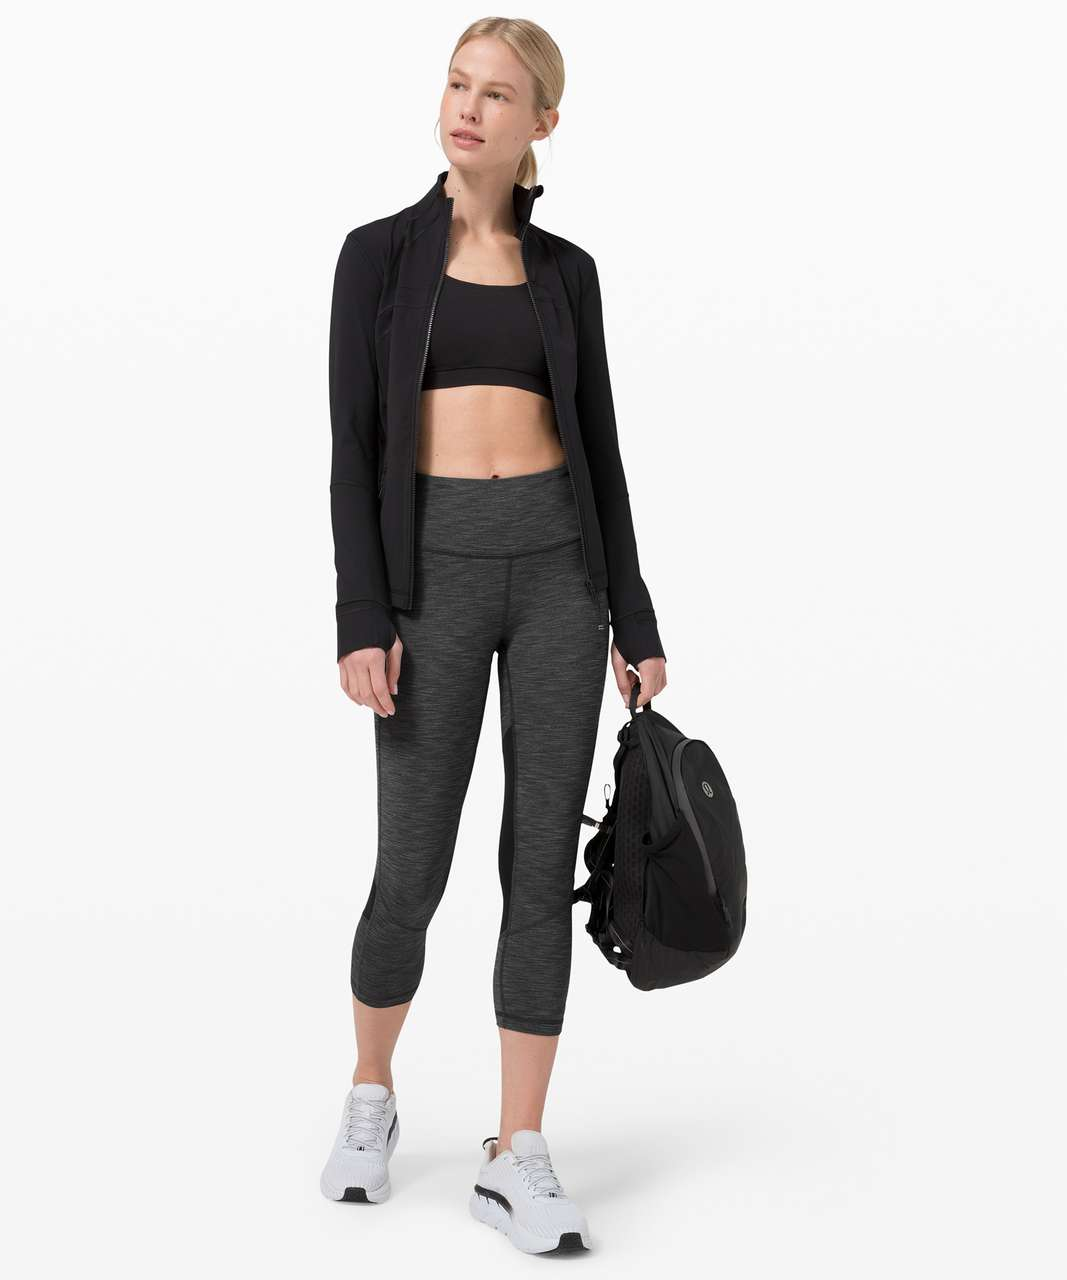 "Lululemon Pace Rival Mid-Rise Crop 22"" - Heathered Black / Black"